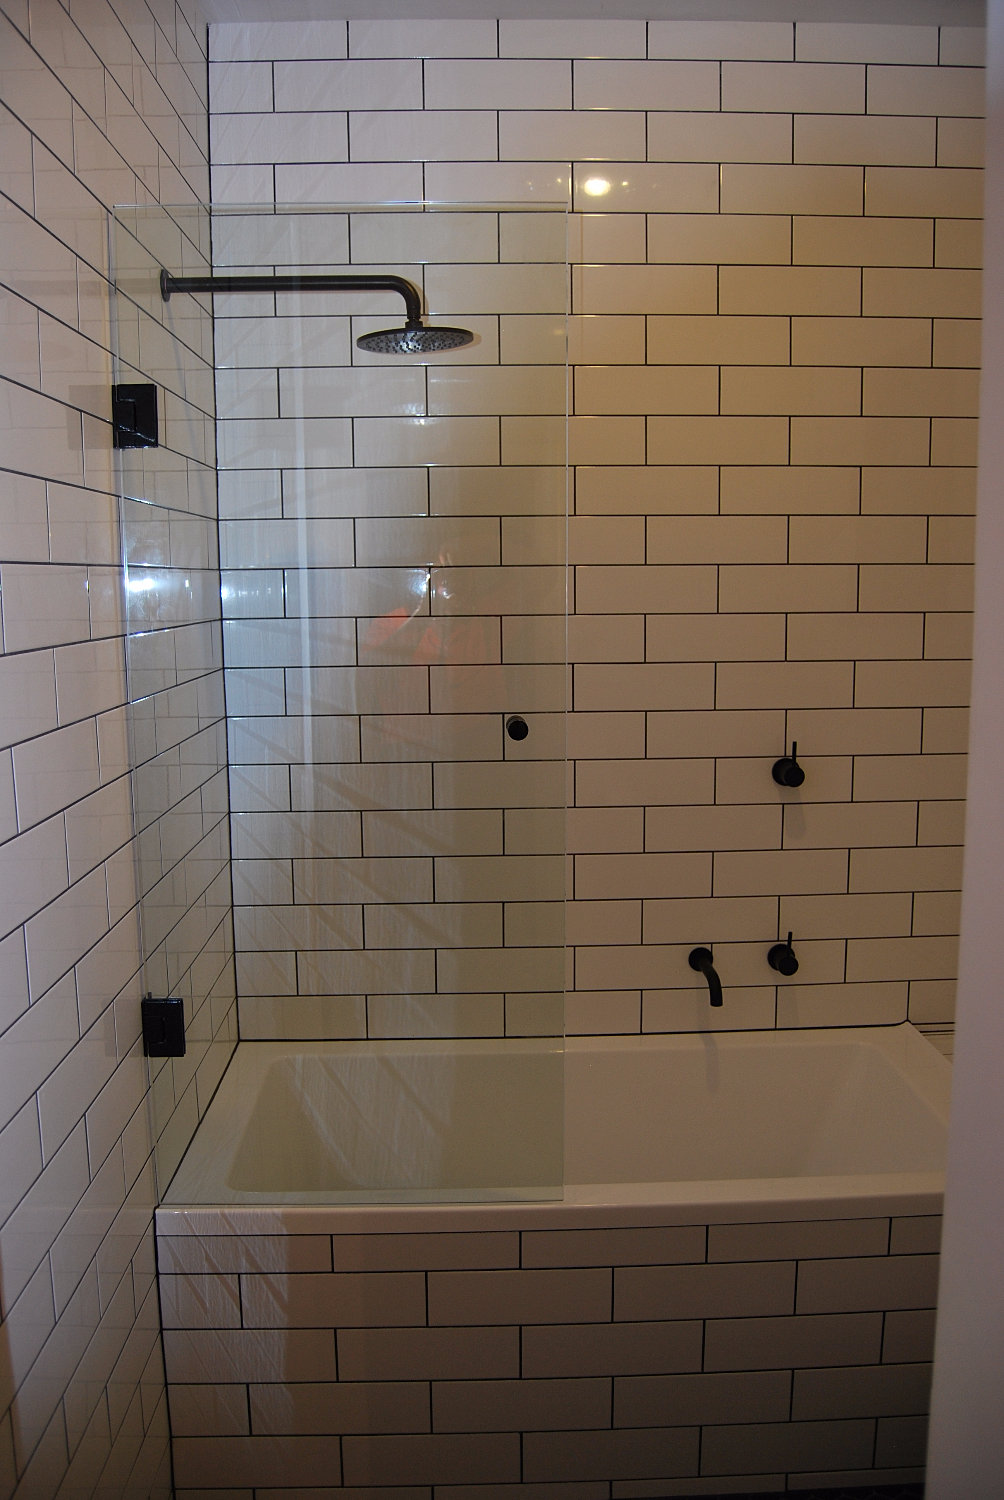 Showers And Mirrors Quality Shower Screens Amp Mirrors In